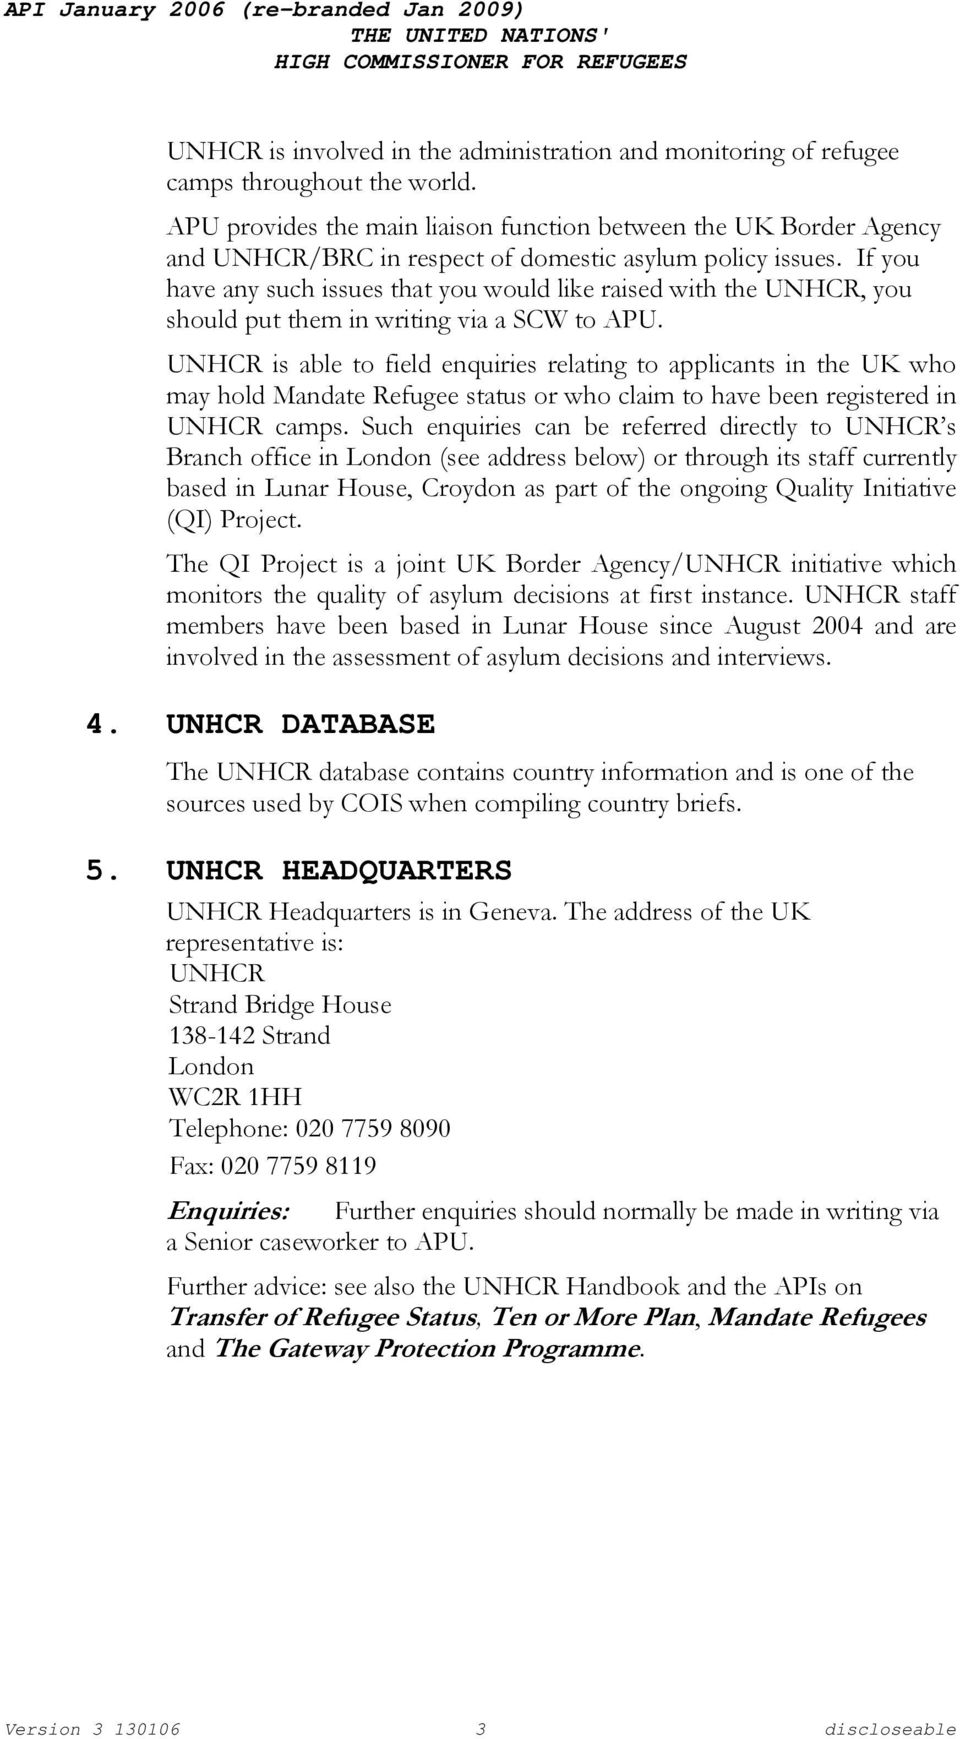 If you have any such issues that you would like raised with the UNHCR, you should put them in writing via a SCW to APU.